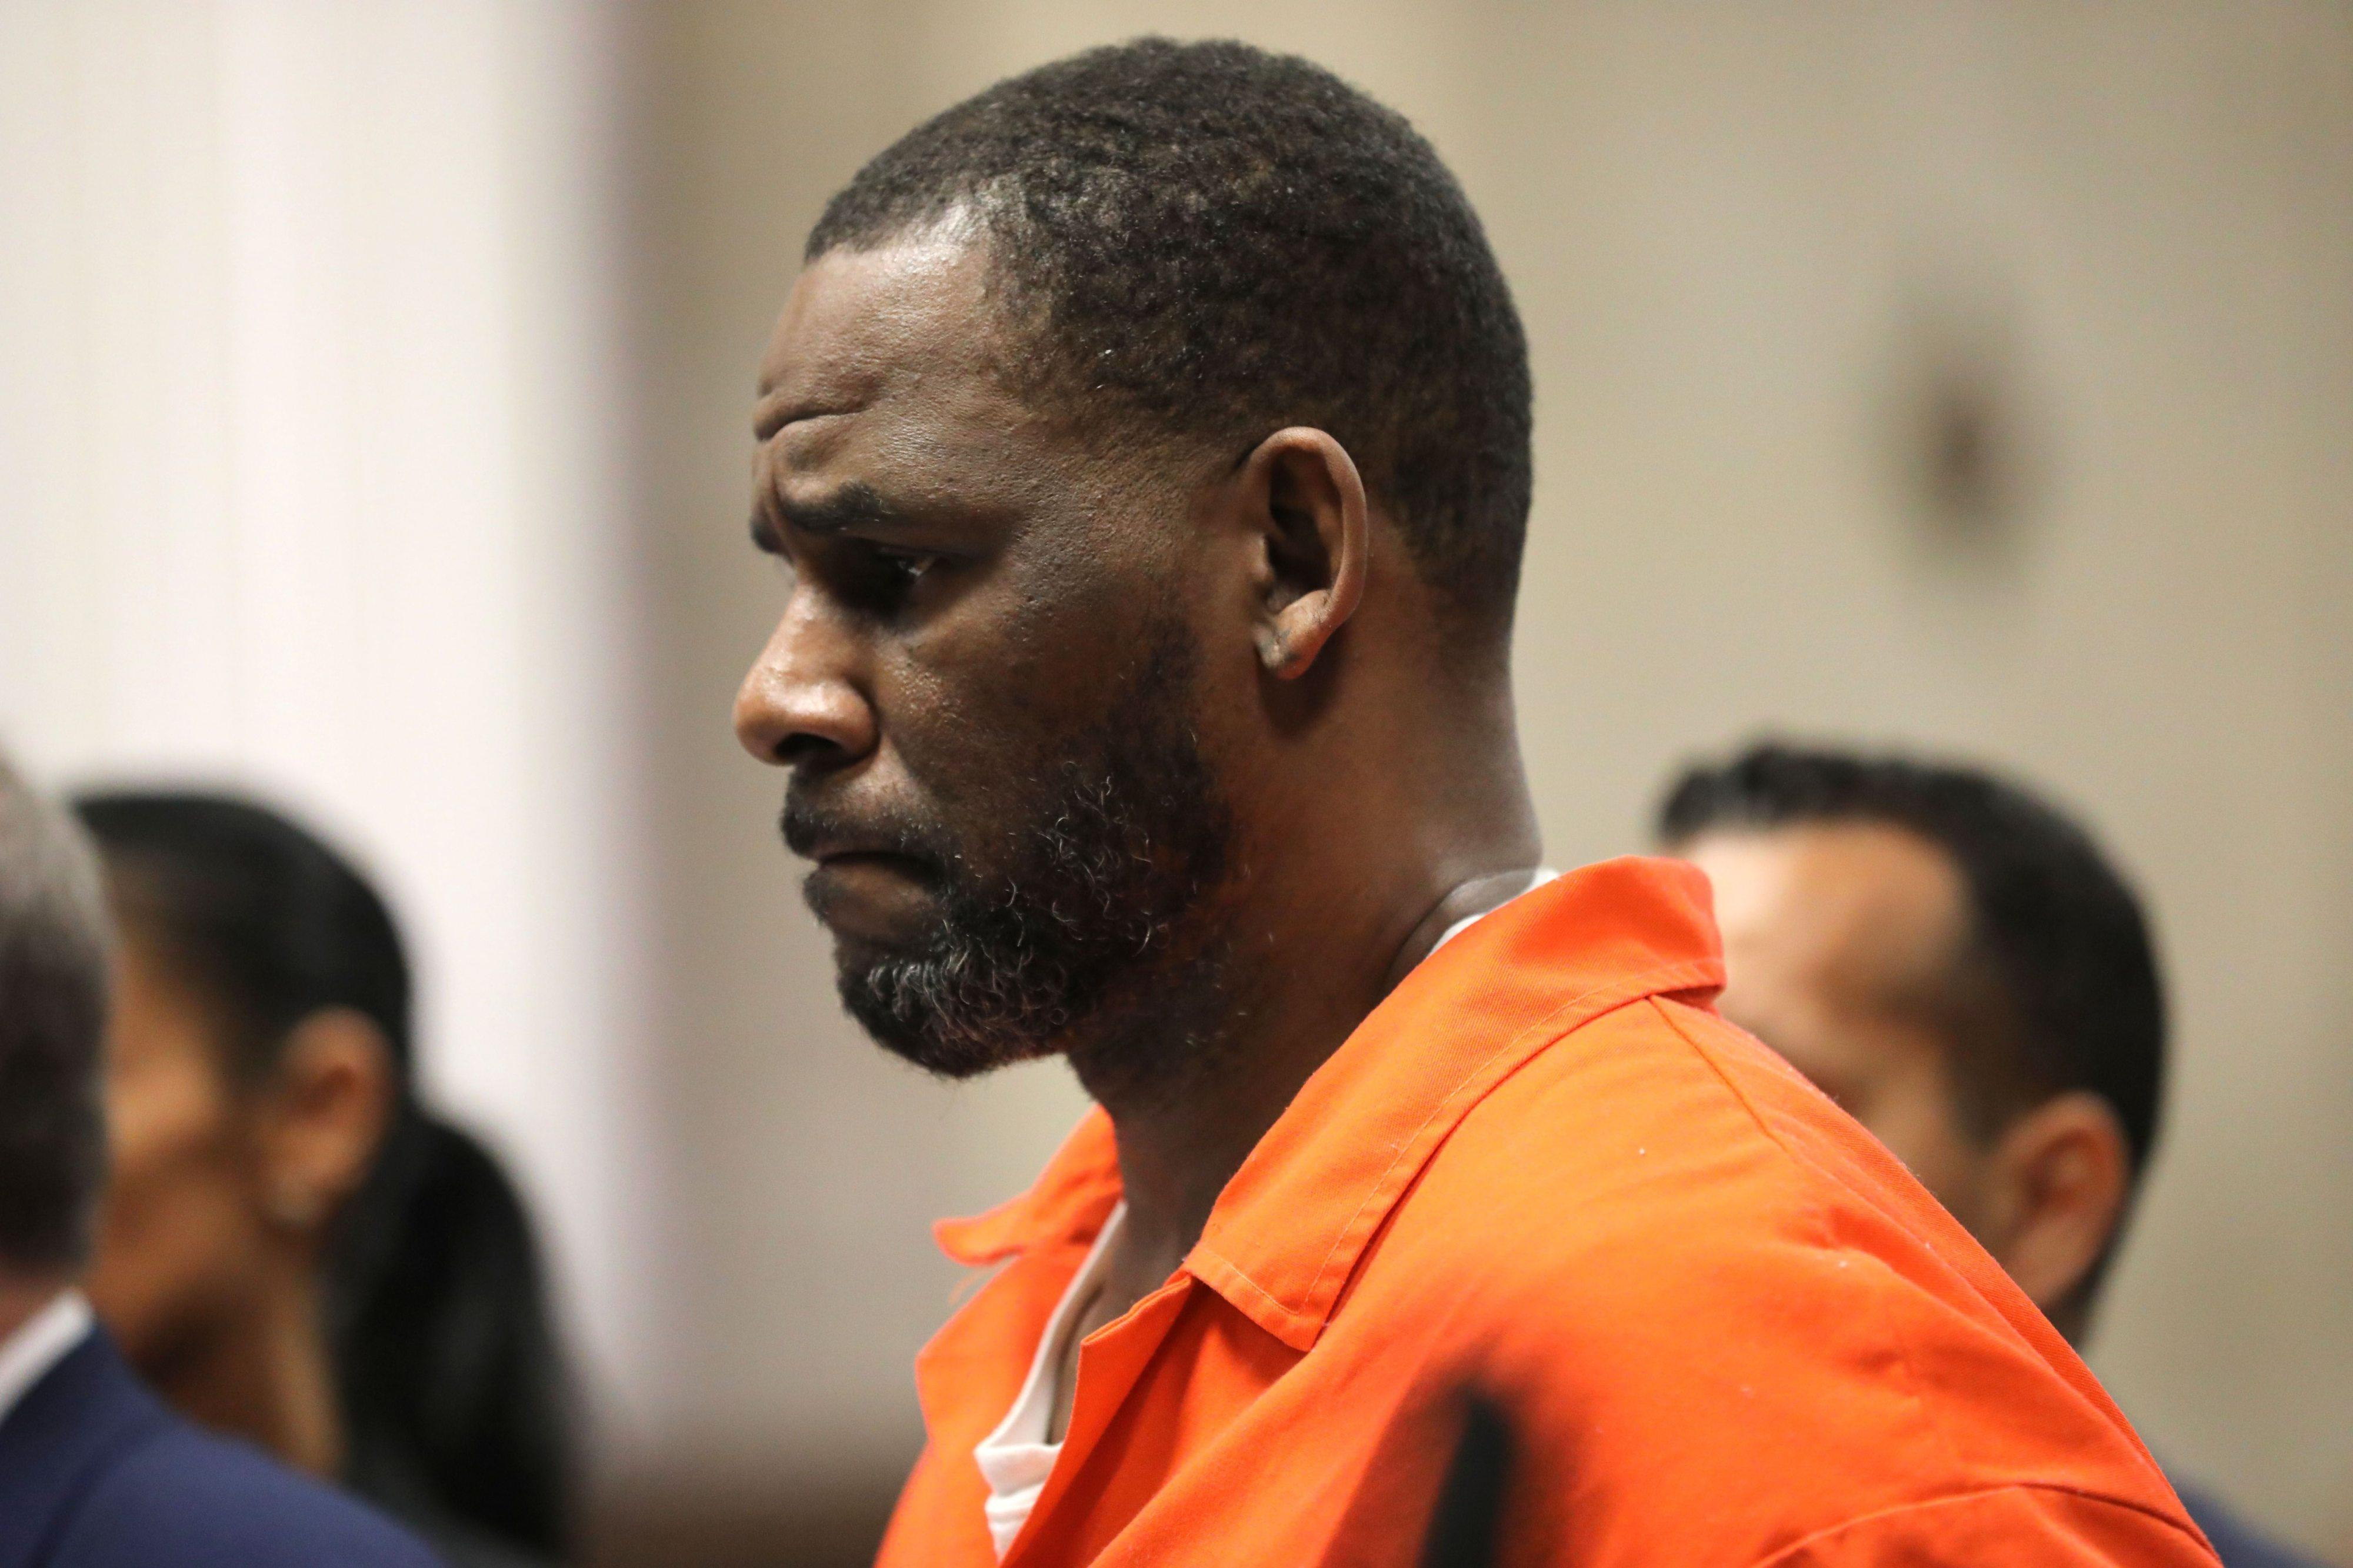 R. Kelly Brooklyn trial delayed by coronavirus hardship for out-of-state witnesses